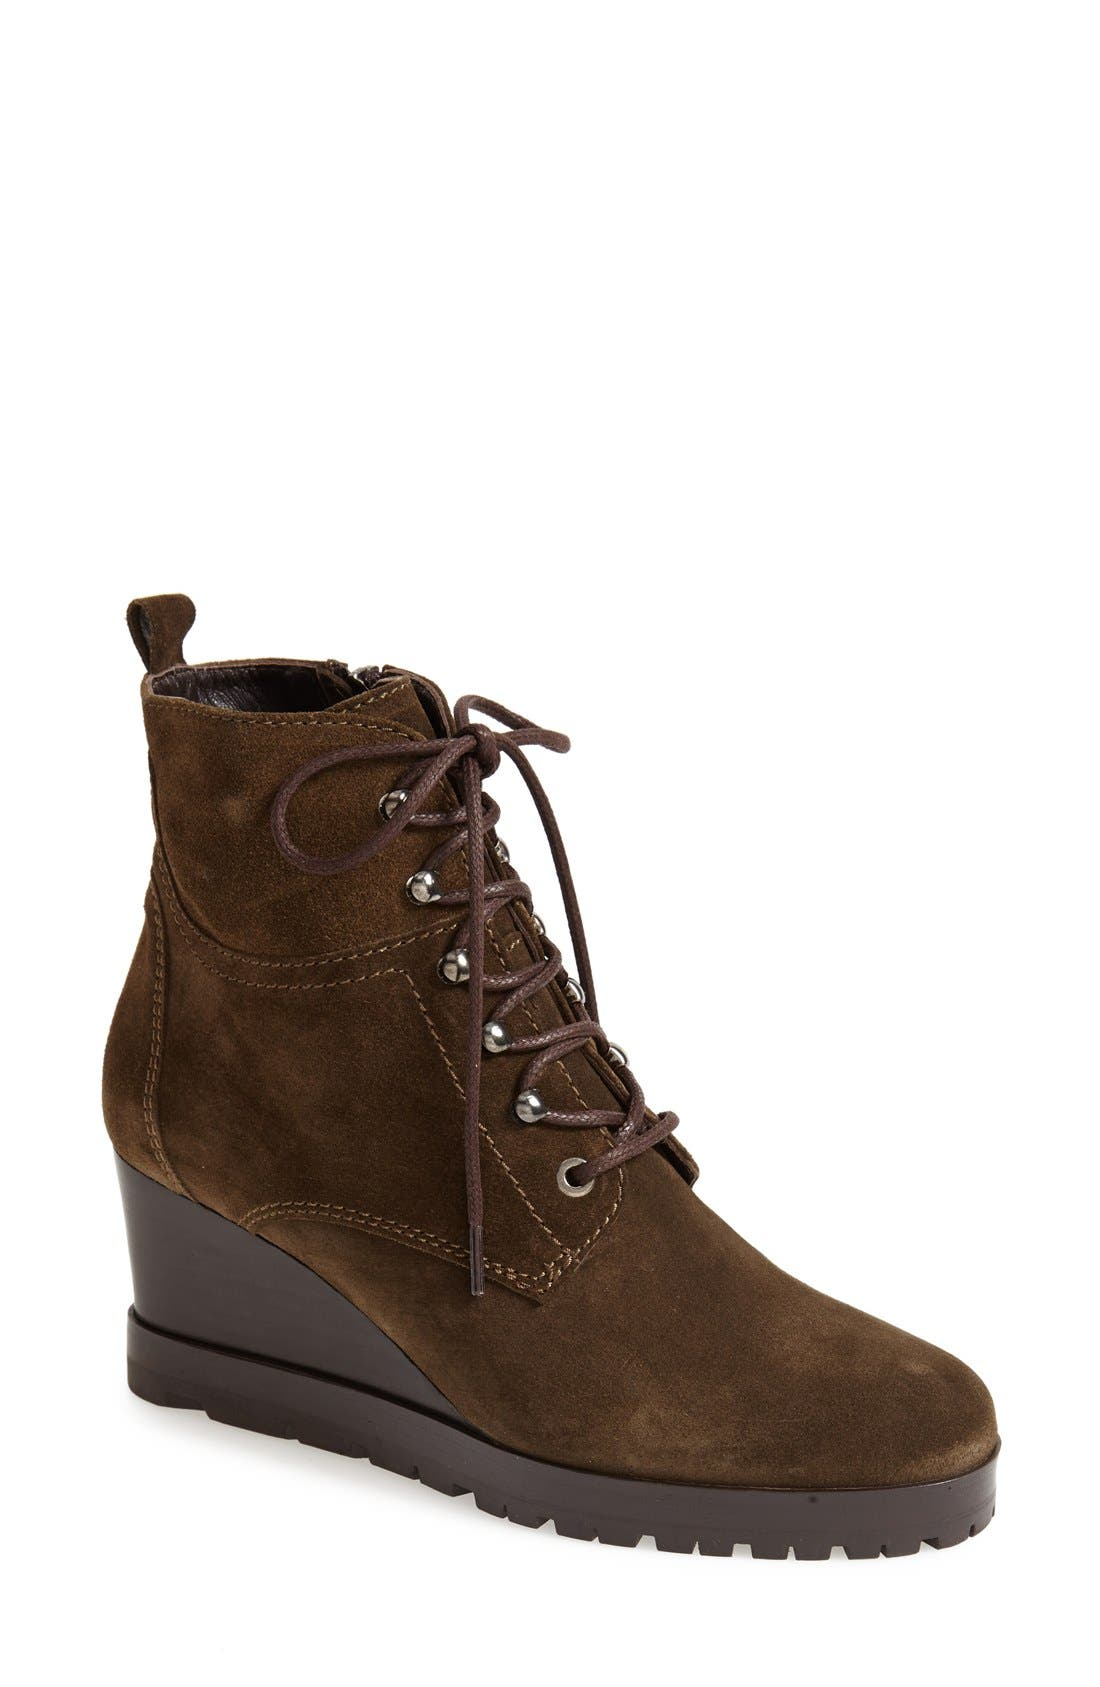 Alternate Image 1 Selected - Aquatalia by Marvin K. 'Chance' Suede Wedge Bootie (Women)